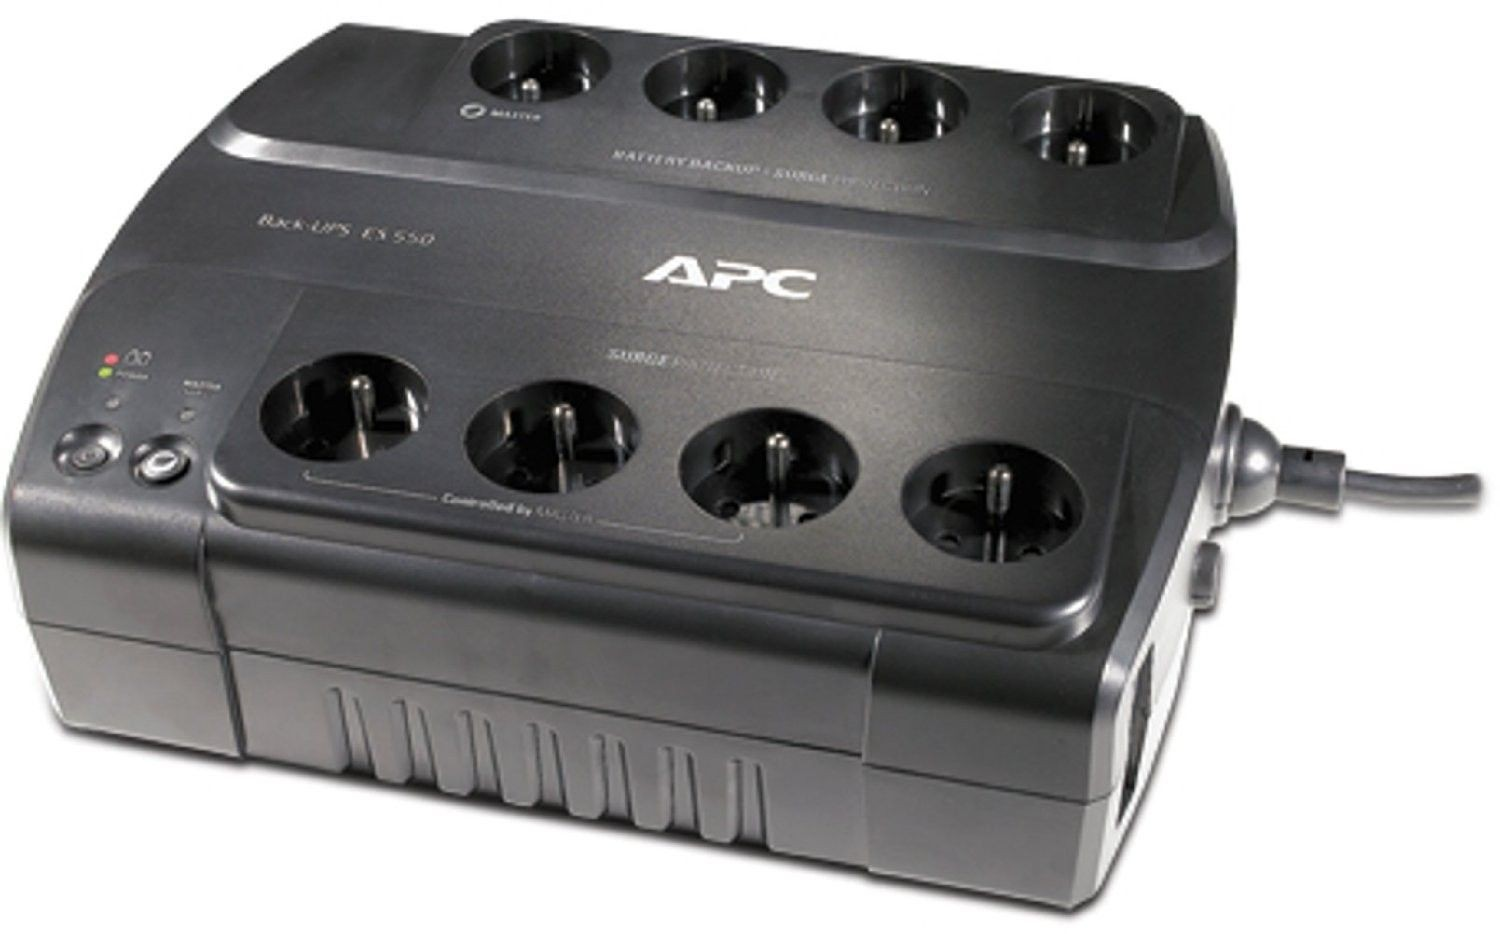 APC Power-Saving Back-UPS ES 550VAm 230V, FR/PL